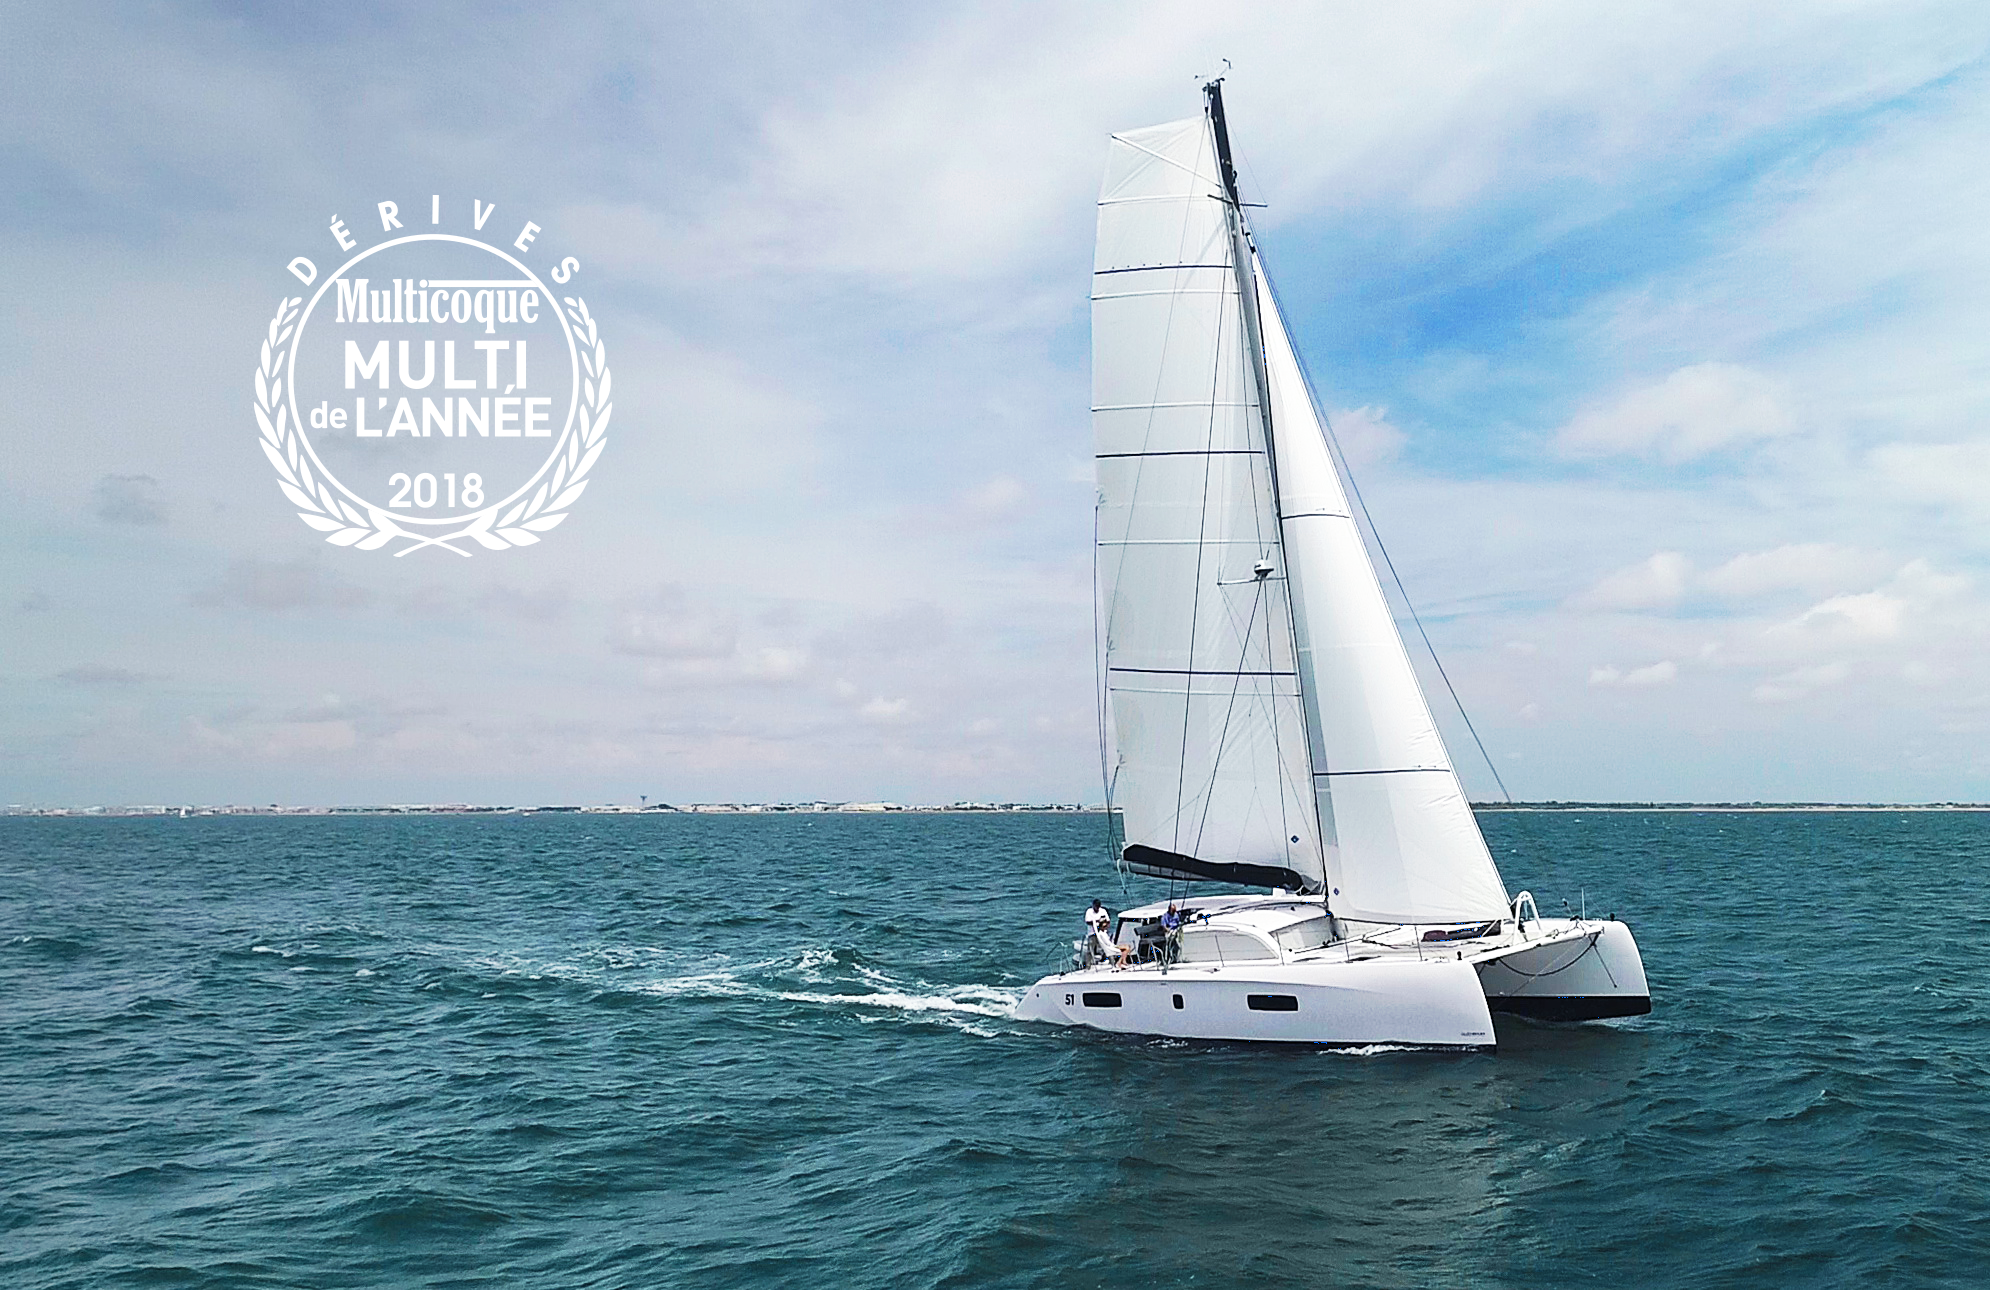 Multihull of the year by Voile Magazine